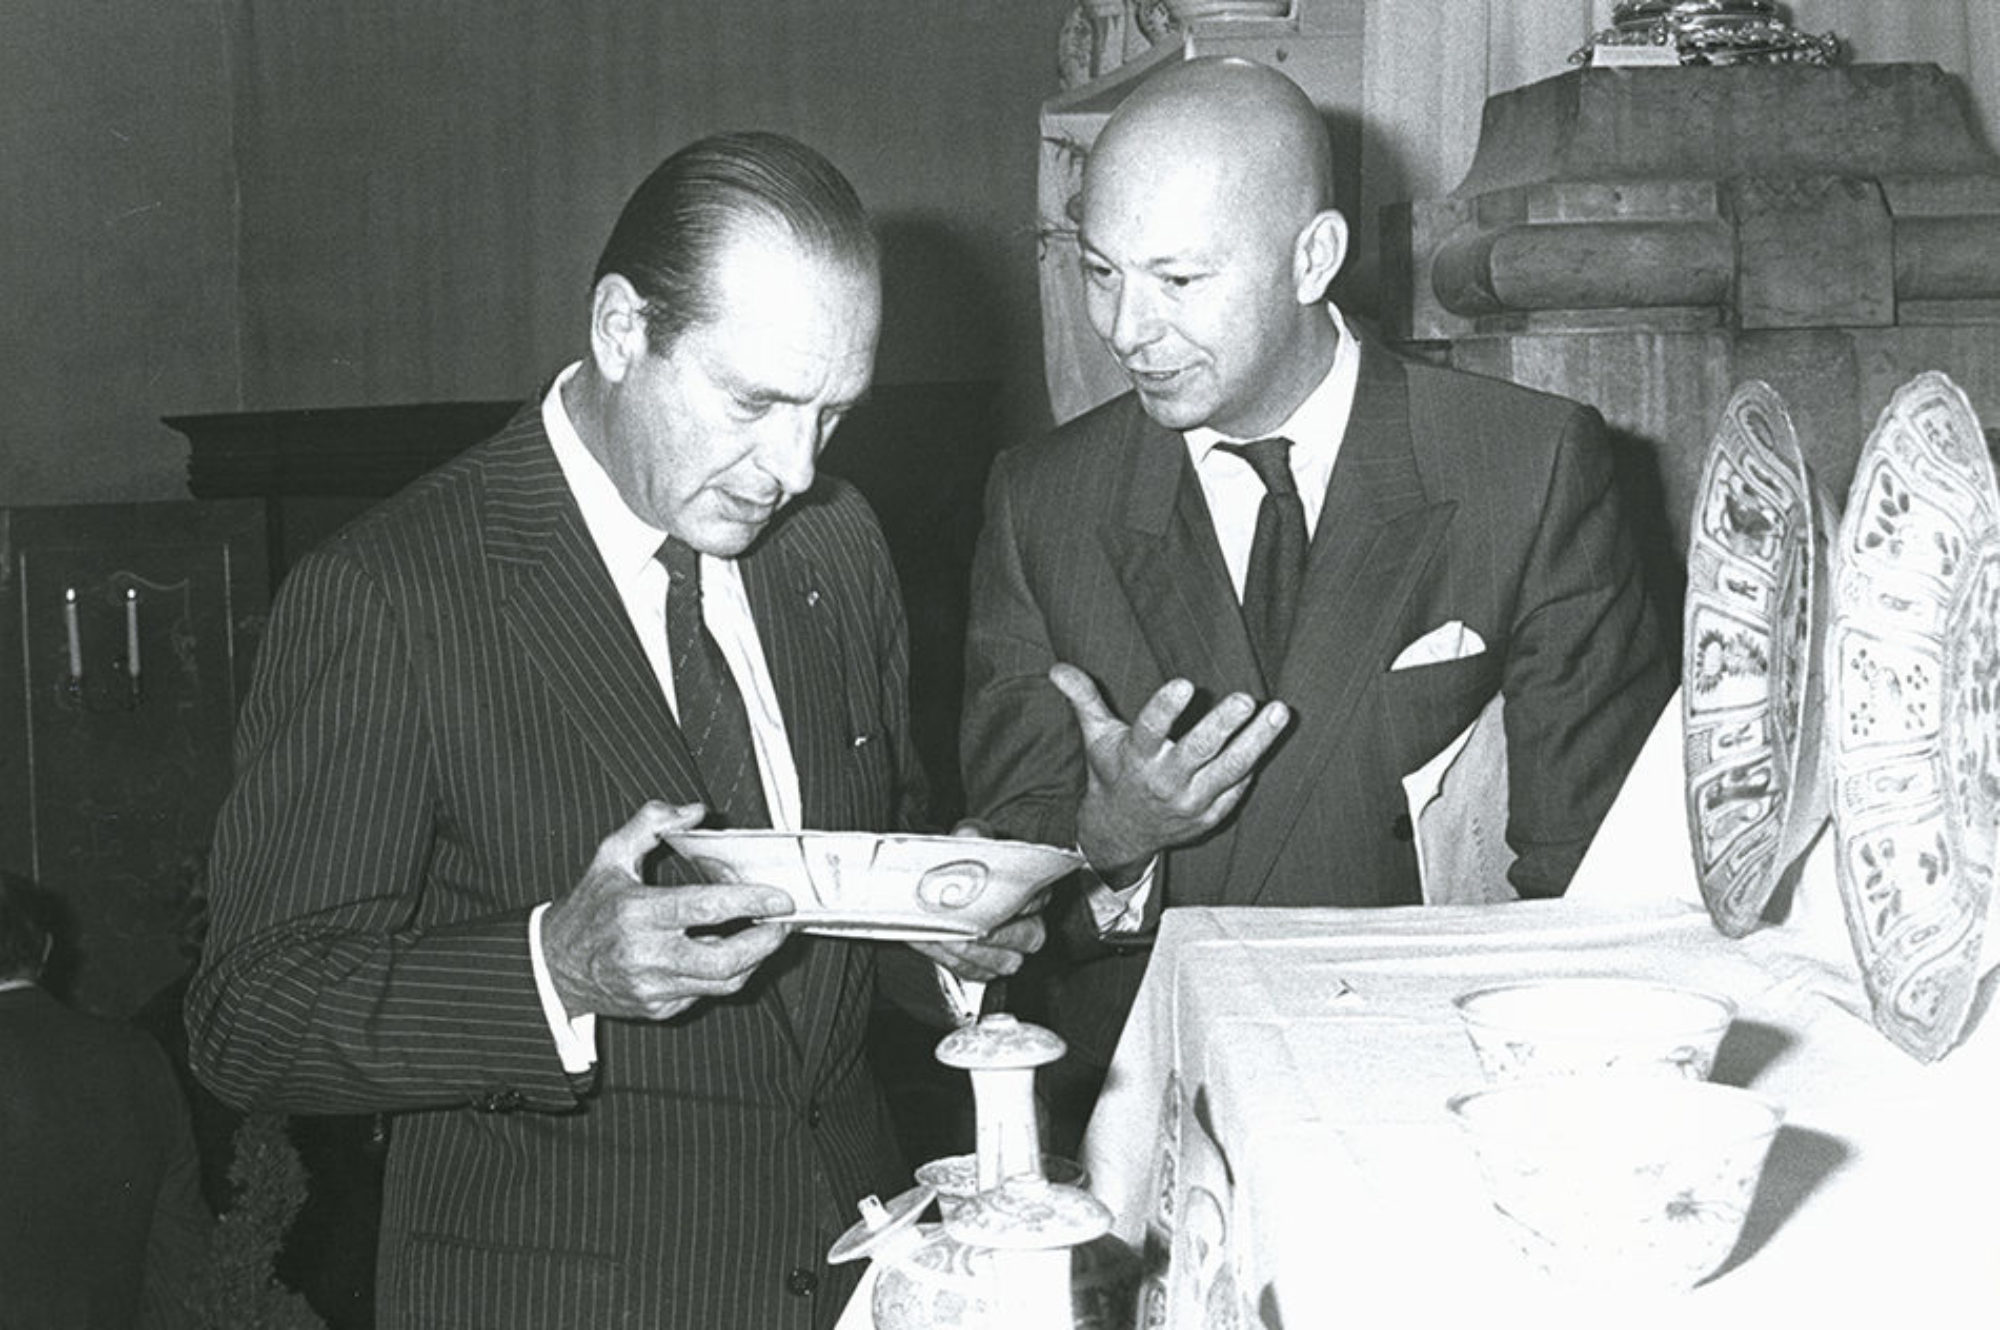 Jacques Chirac and Axel Vervoordt discussing the Hatcher Cargo at the 1984 Biennale des Antiquaires